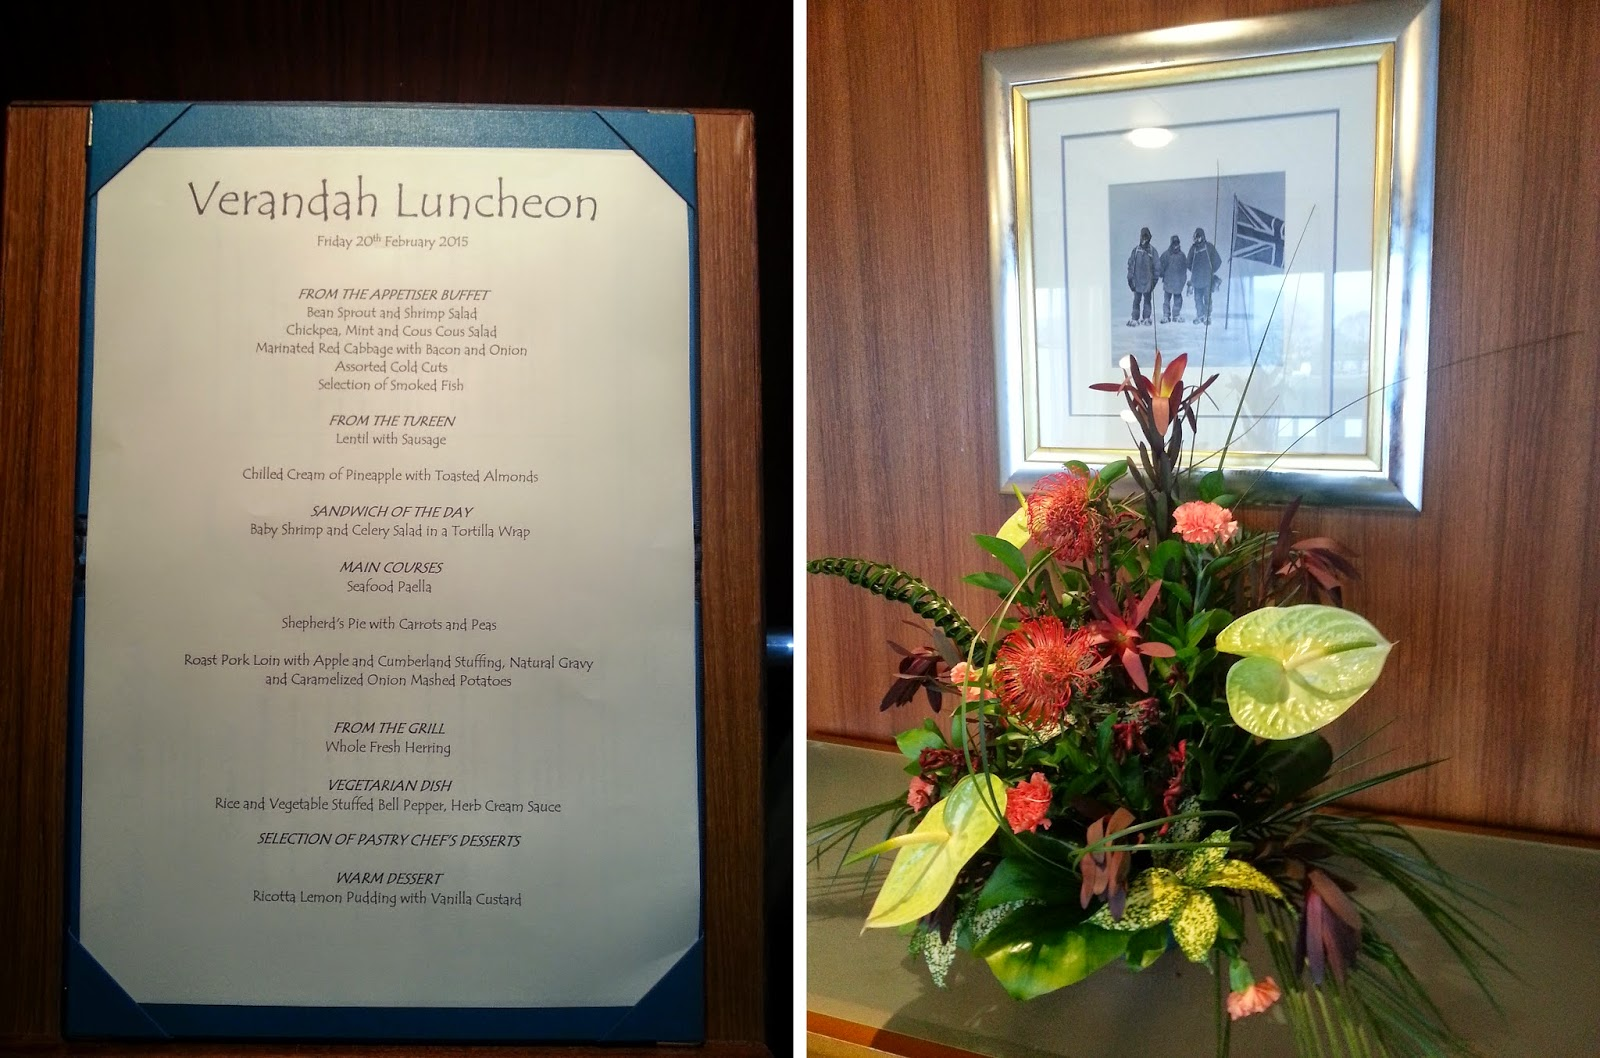 Cruise Ship Saga Pearl II - Verandah Restaurant Lunch Menu